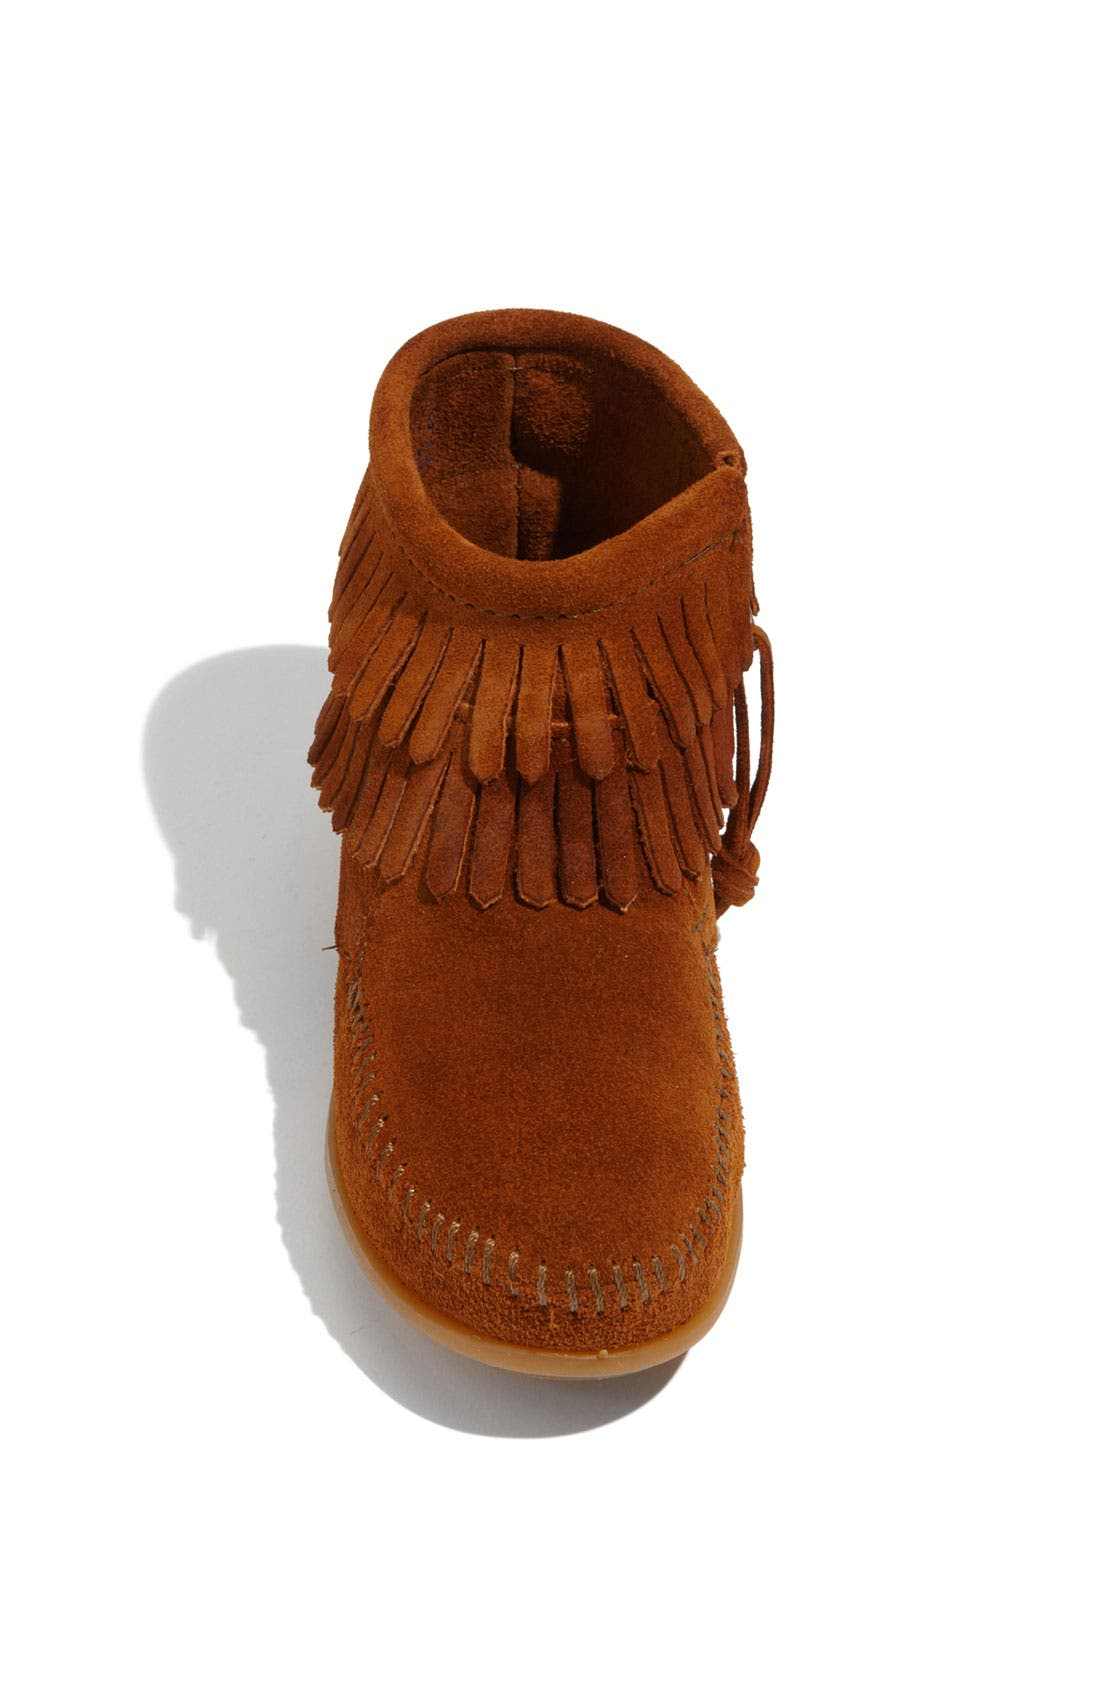 Alternate Image 3  - Minnetonka 'Double Fringe' Boot (Walker, Toddler, Little Kid & Big Kid)